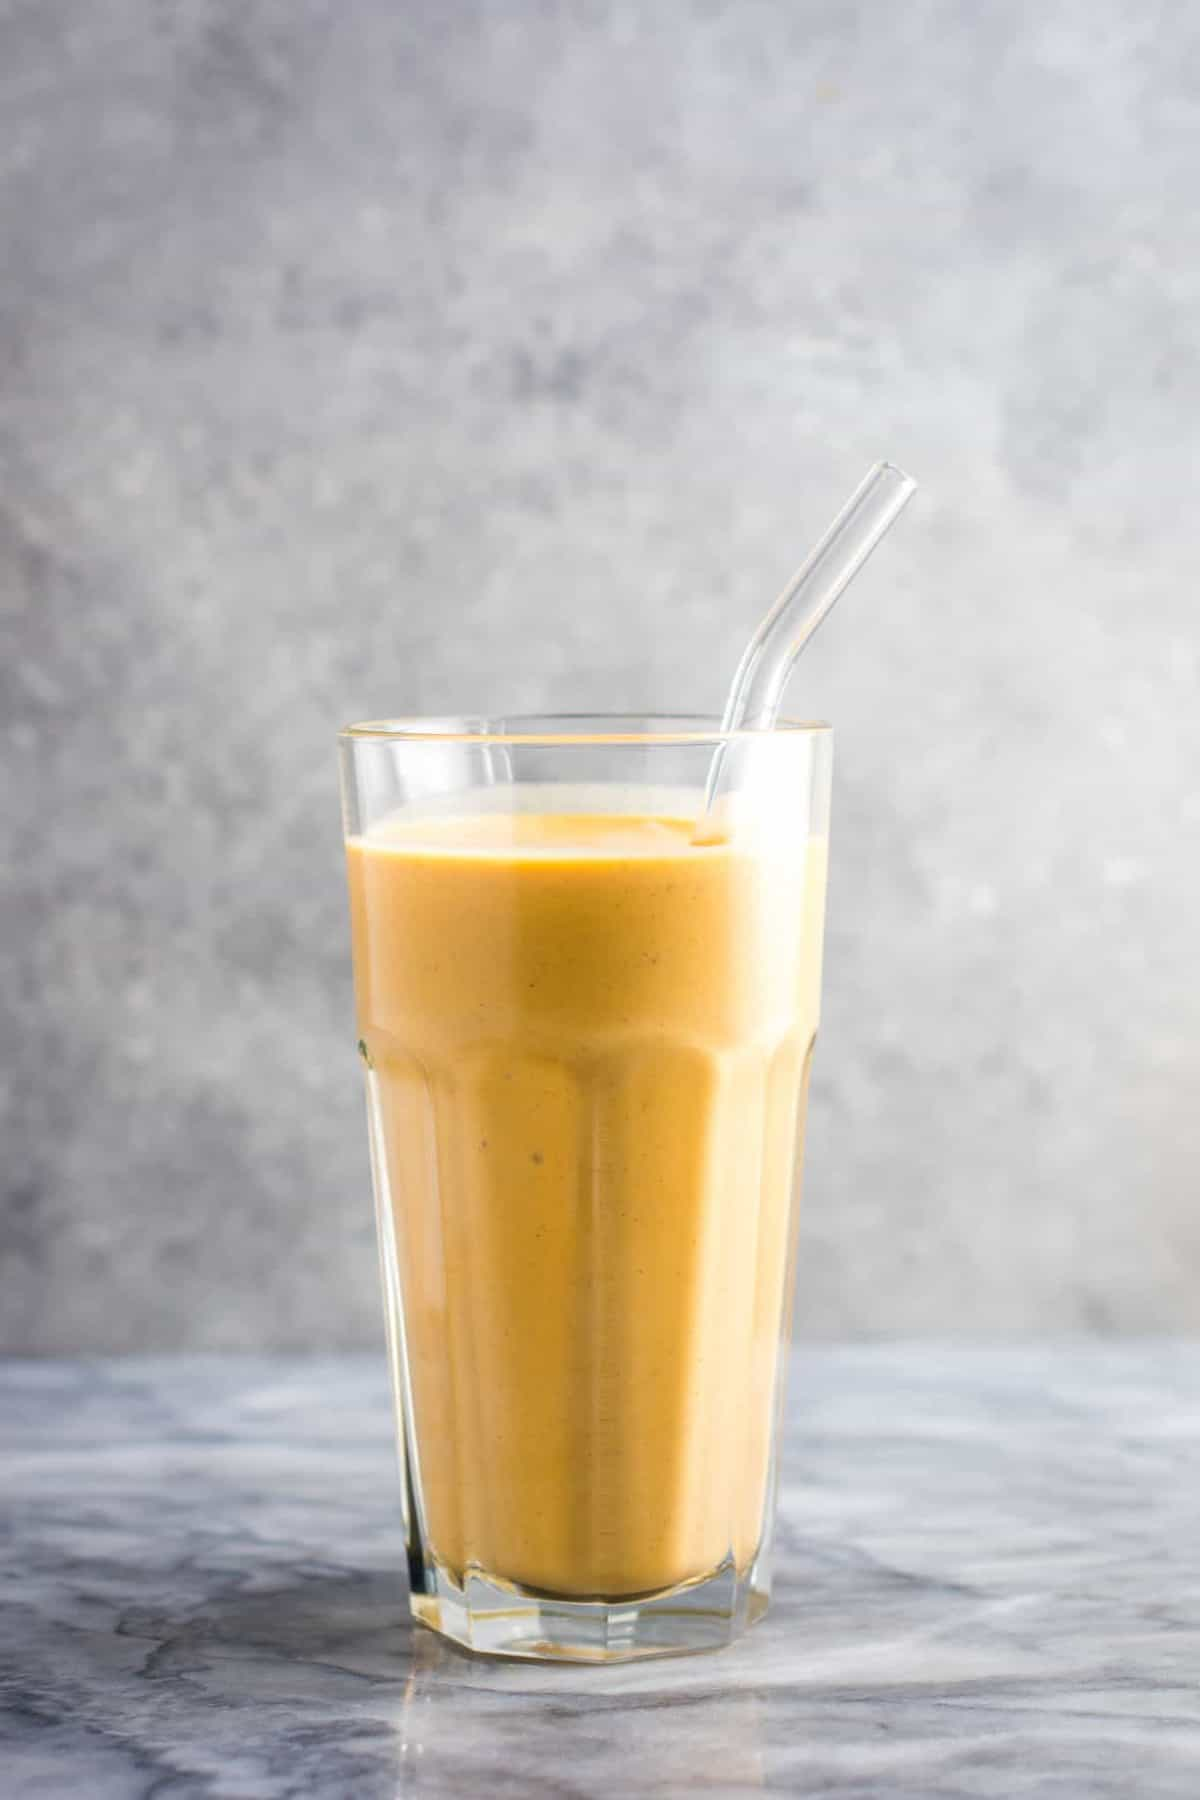 Sweet potato smoothie in a glass with a glass straw